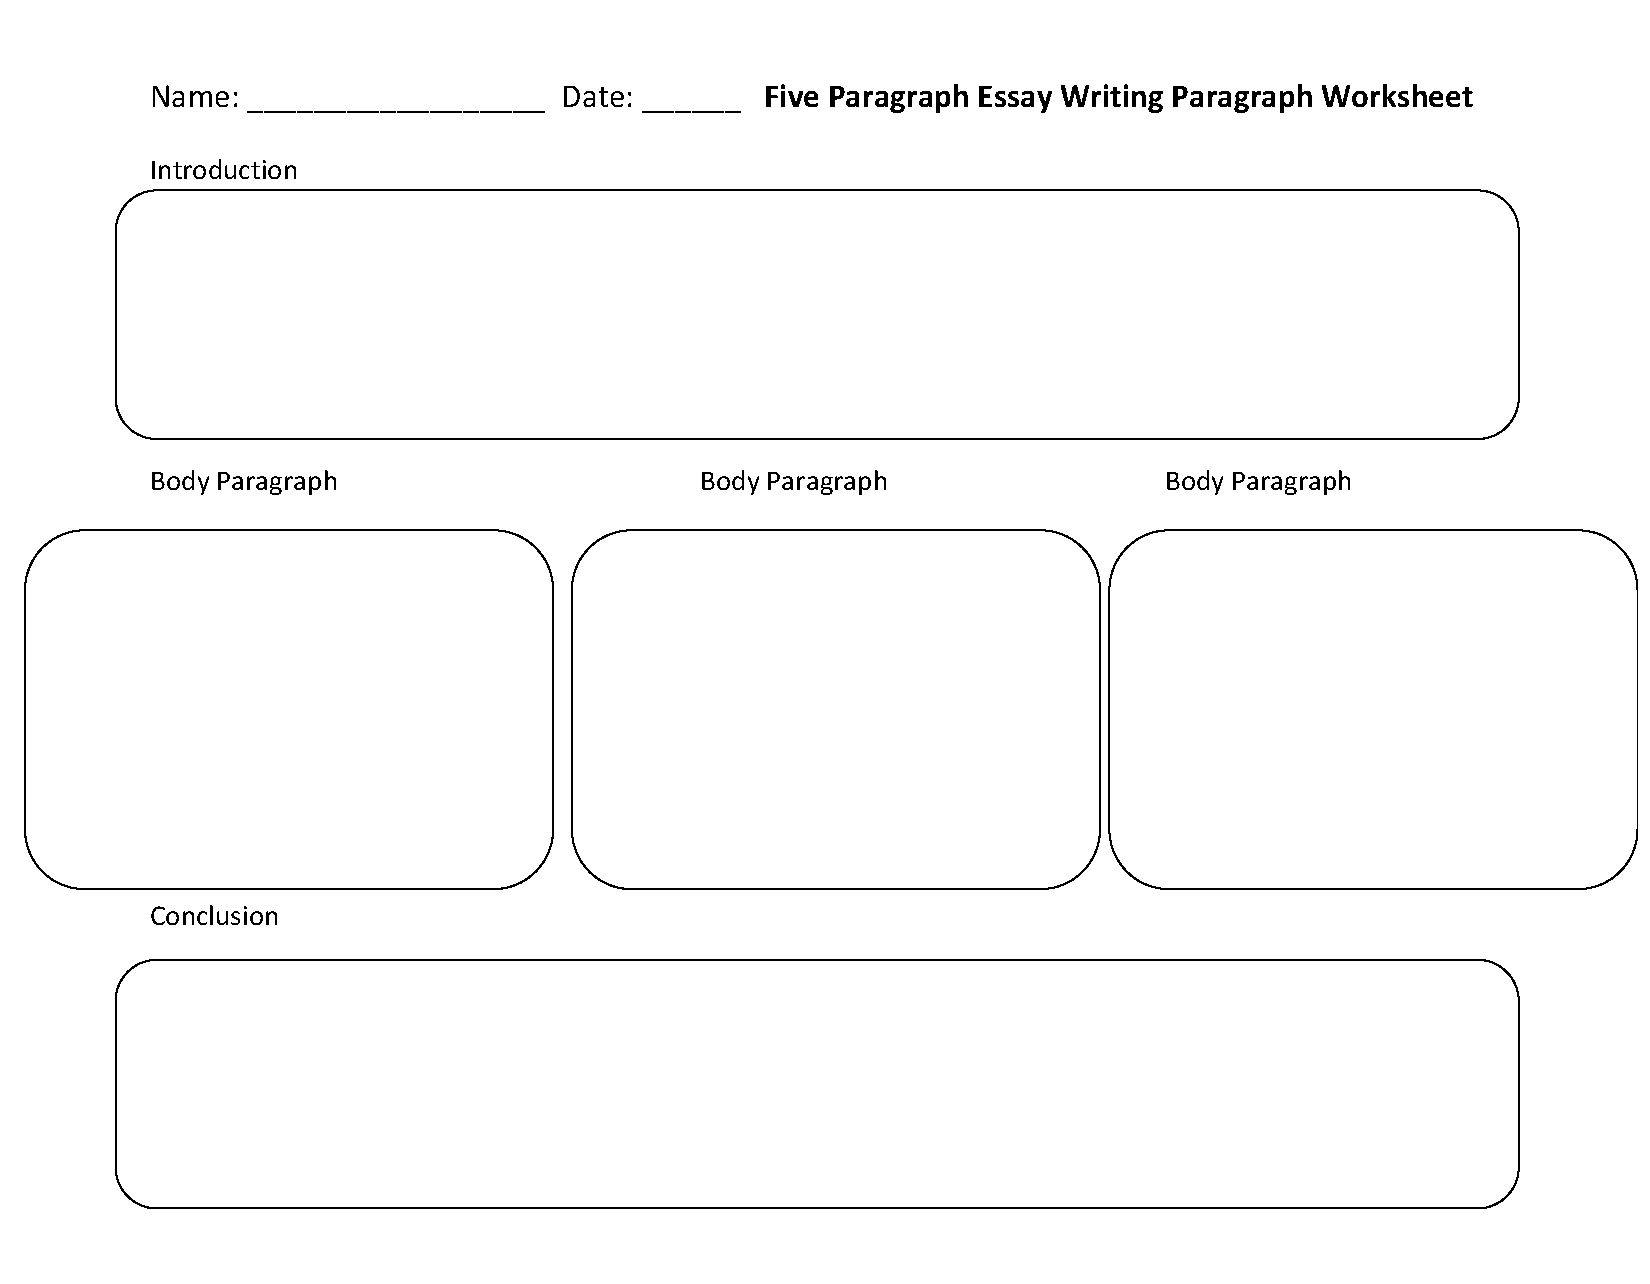 Five Paragraph Essay Writing Worksheets Writing Worksheets Paragraph Writing Worksheets Paragraph Writing [ 1284 x 1650 Pixel ]